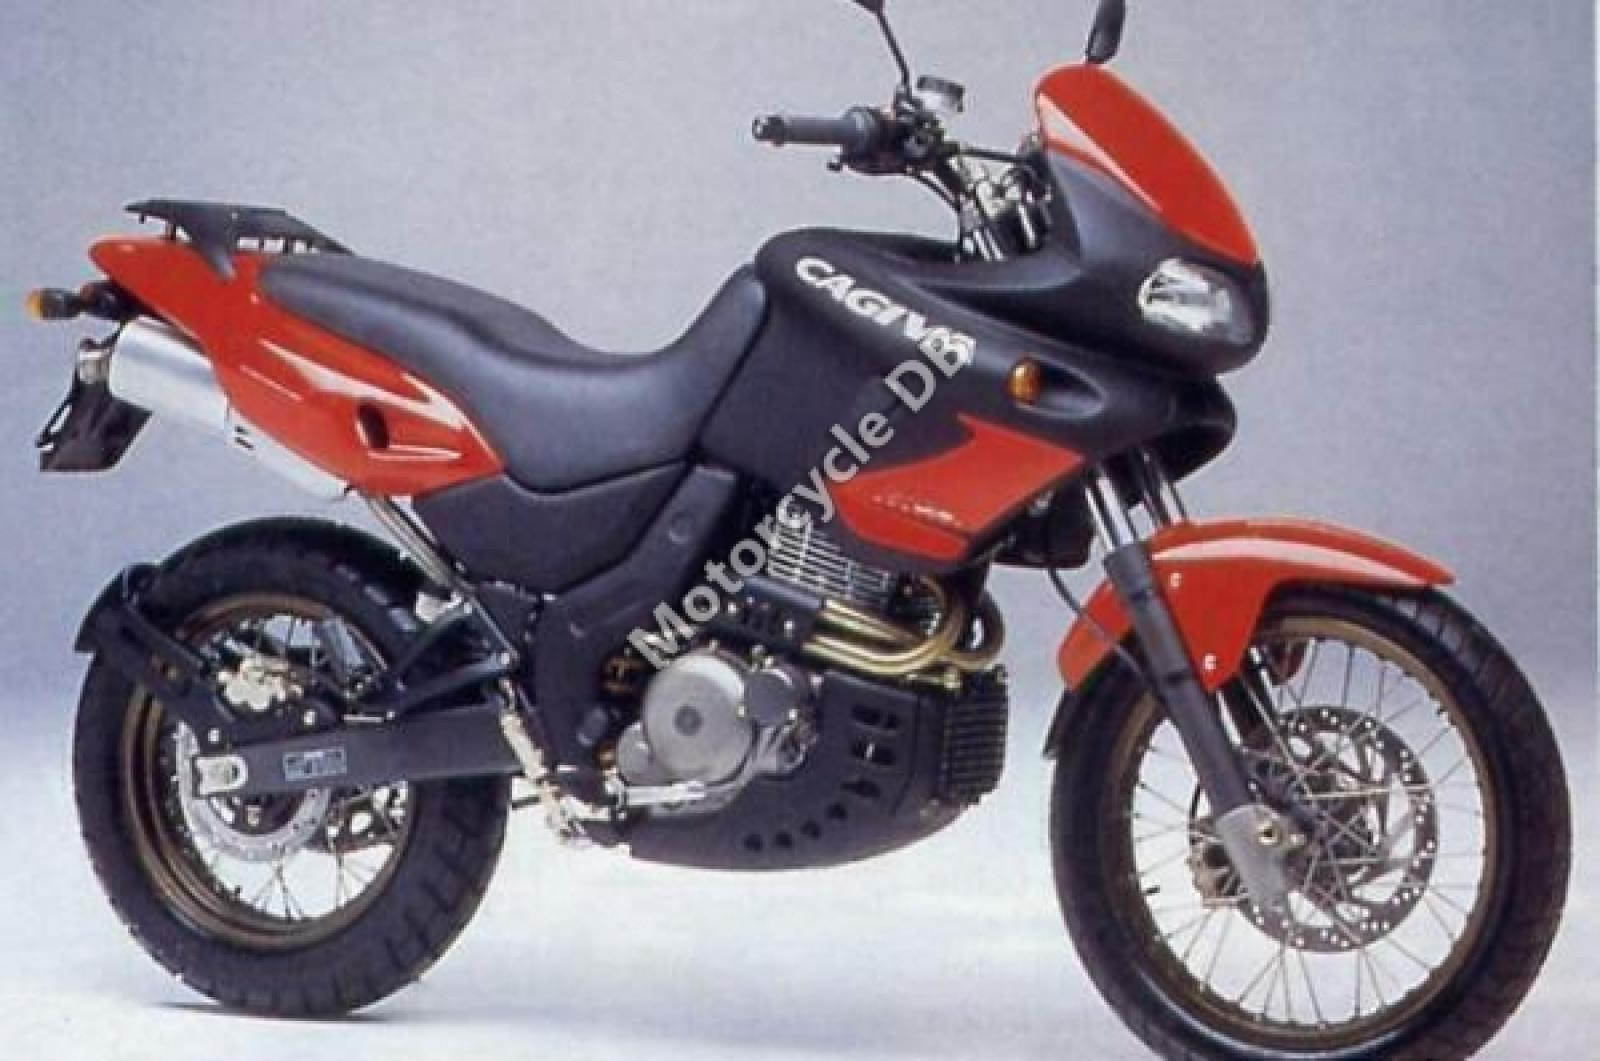 Cagiva Canyon 500 images #69334